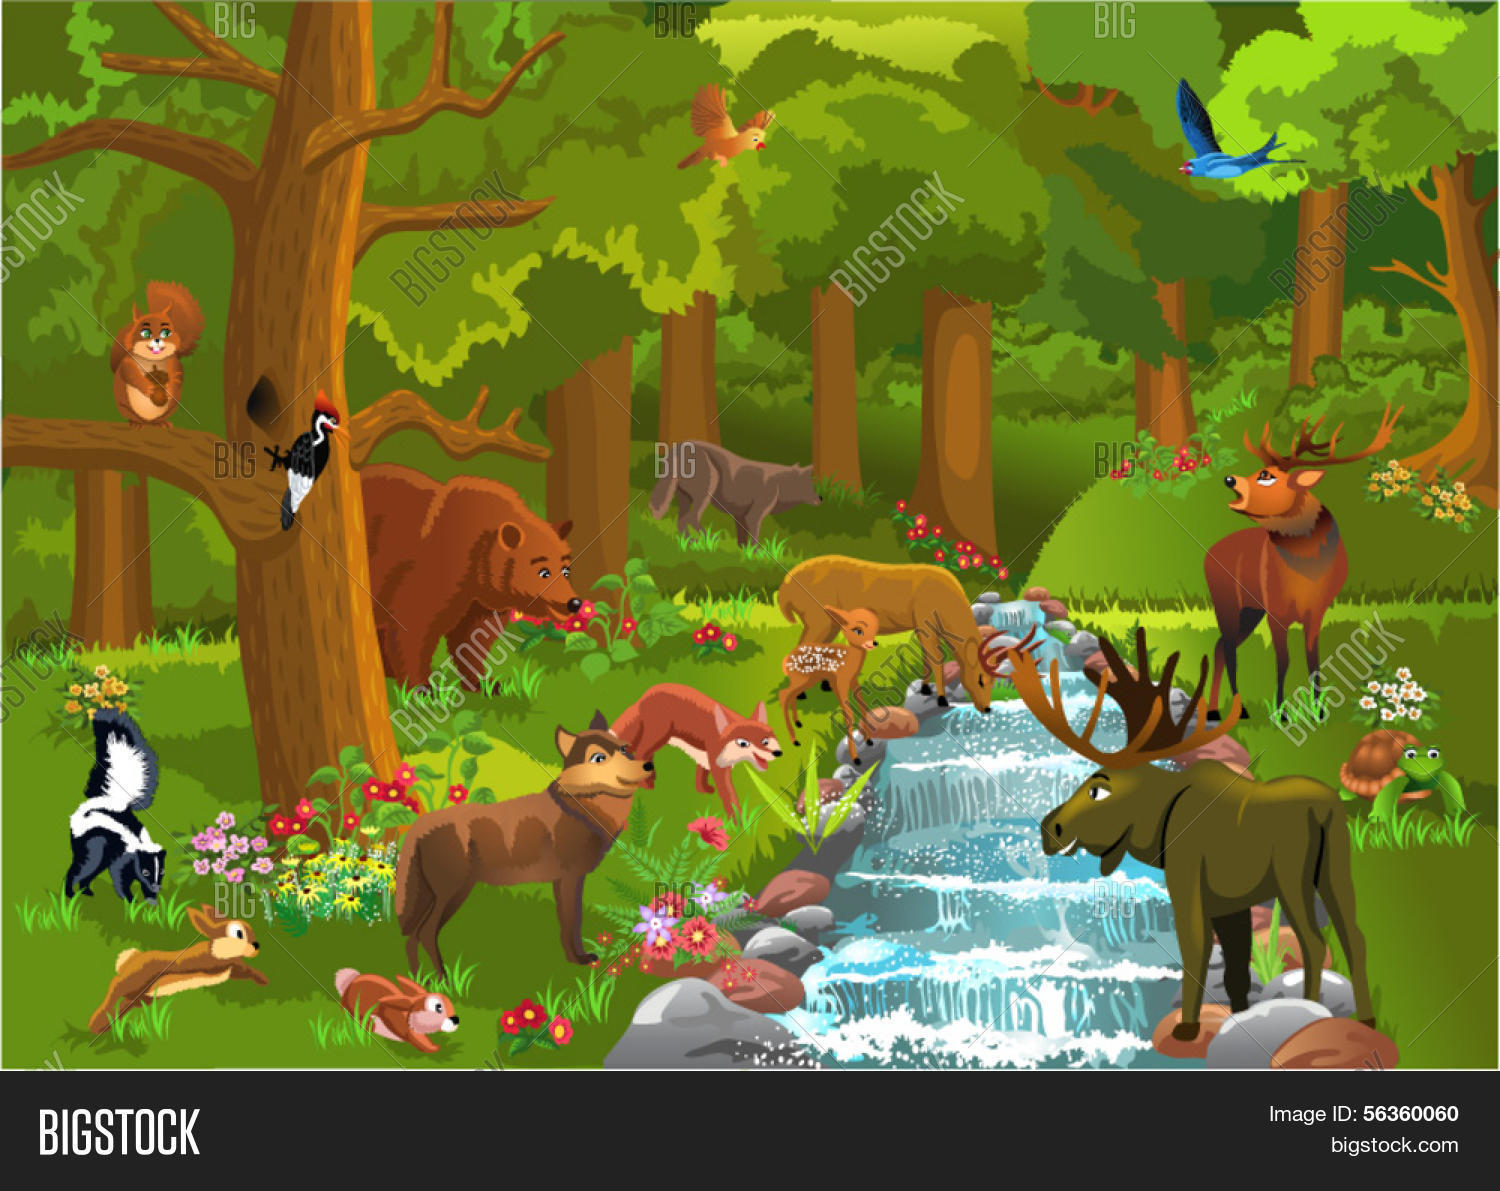 All pictures of wild animals in the forest